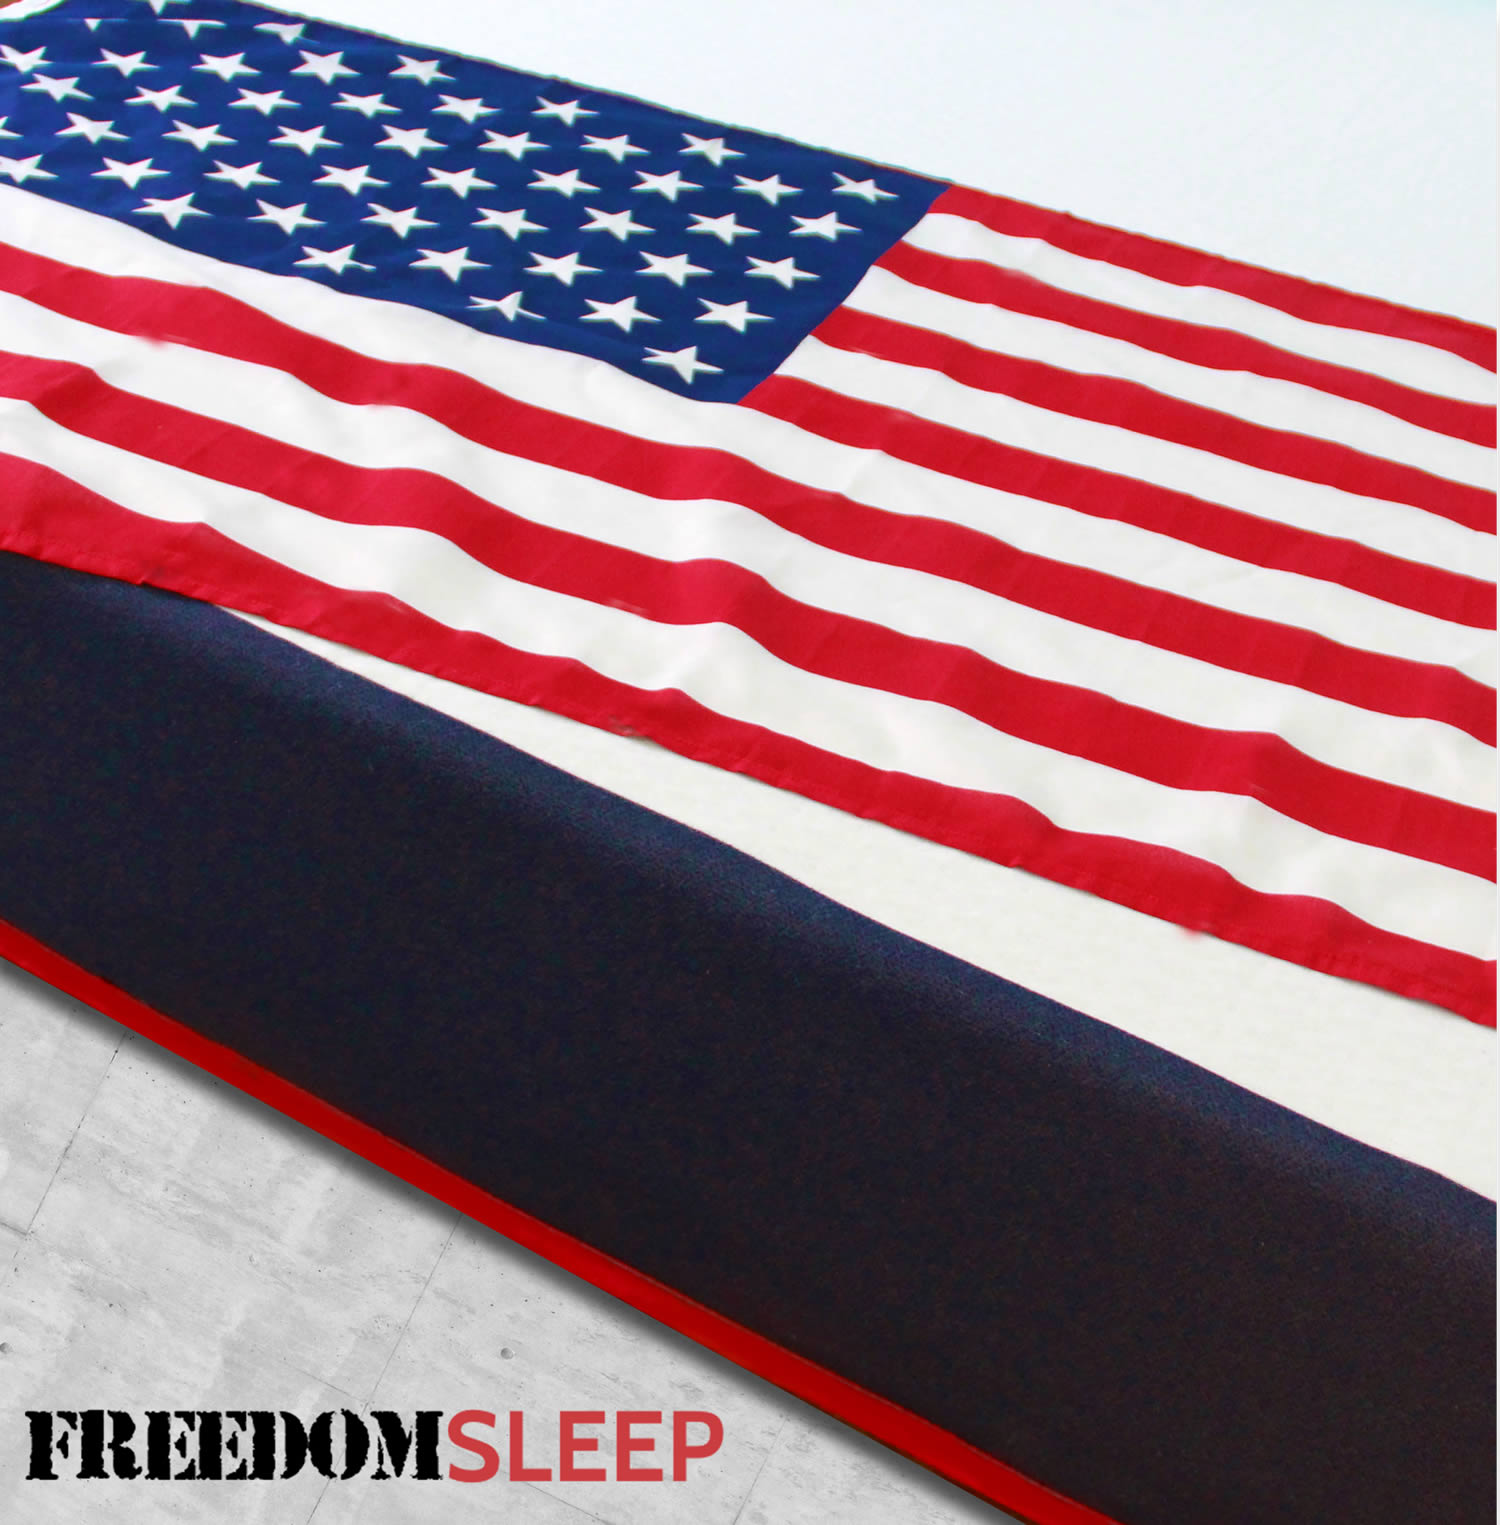 Freedom Sleep Mattress